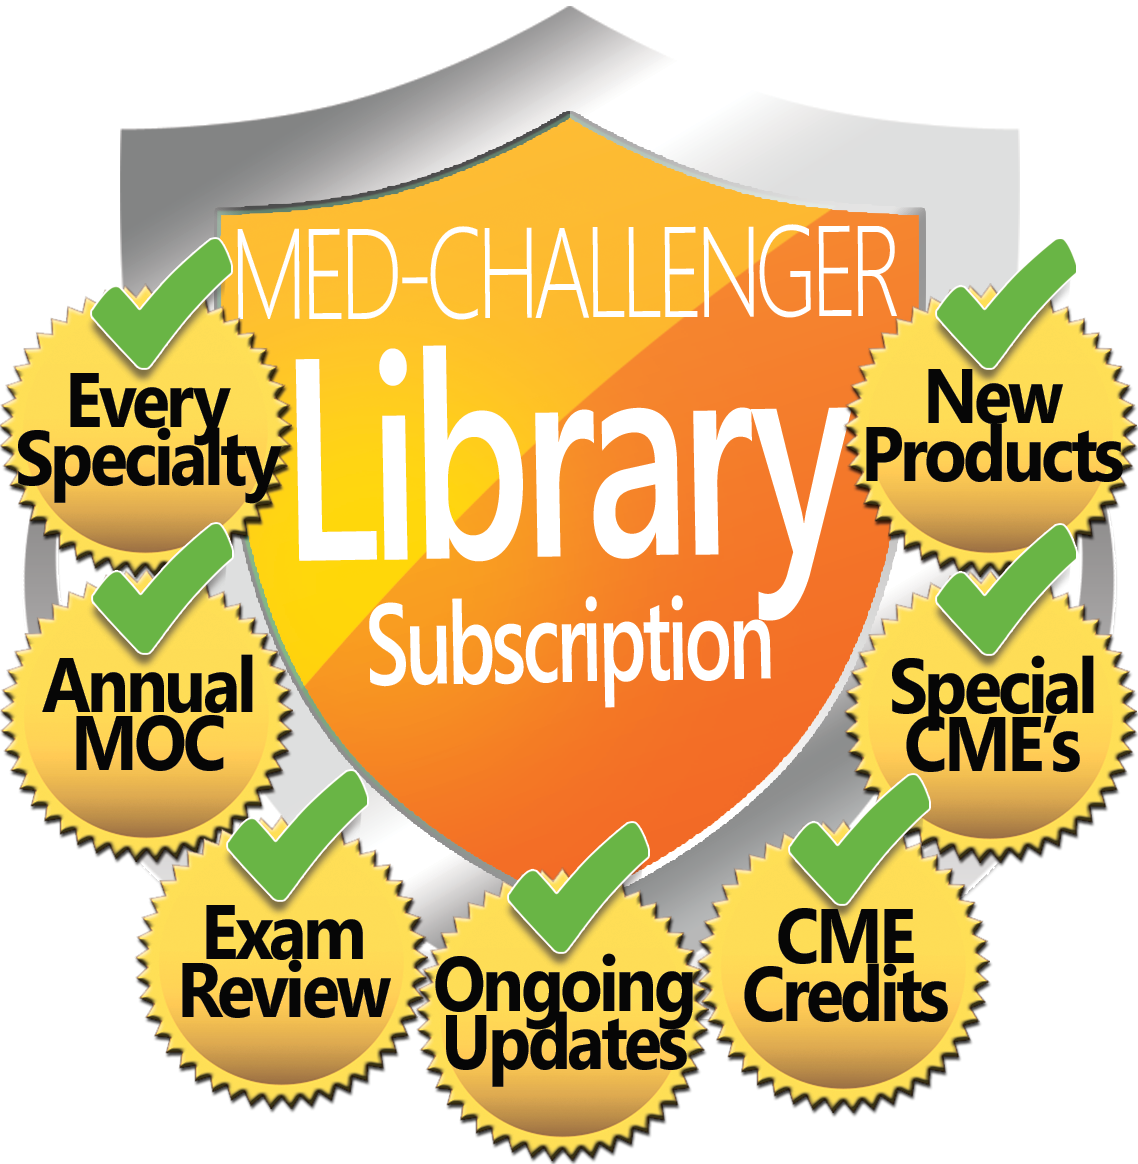 Med-Challenger full Library Subscription